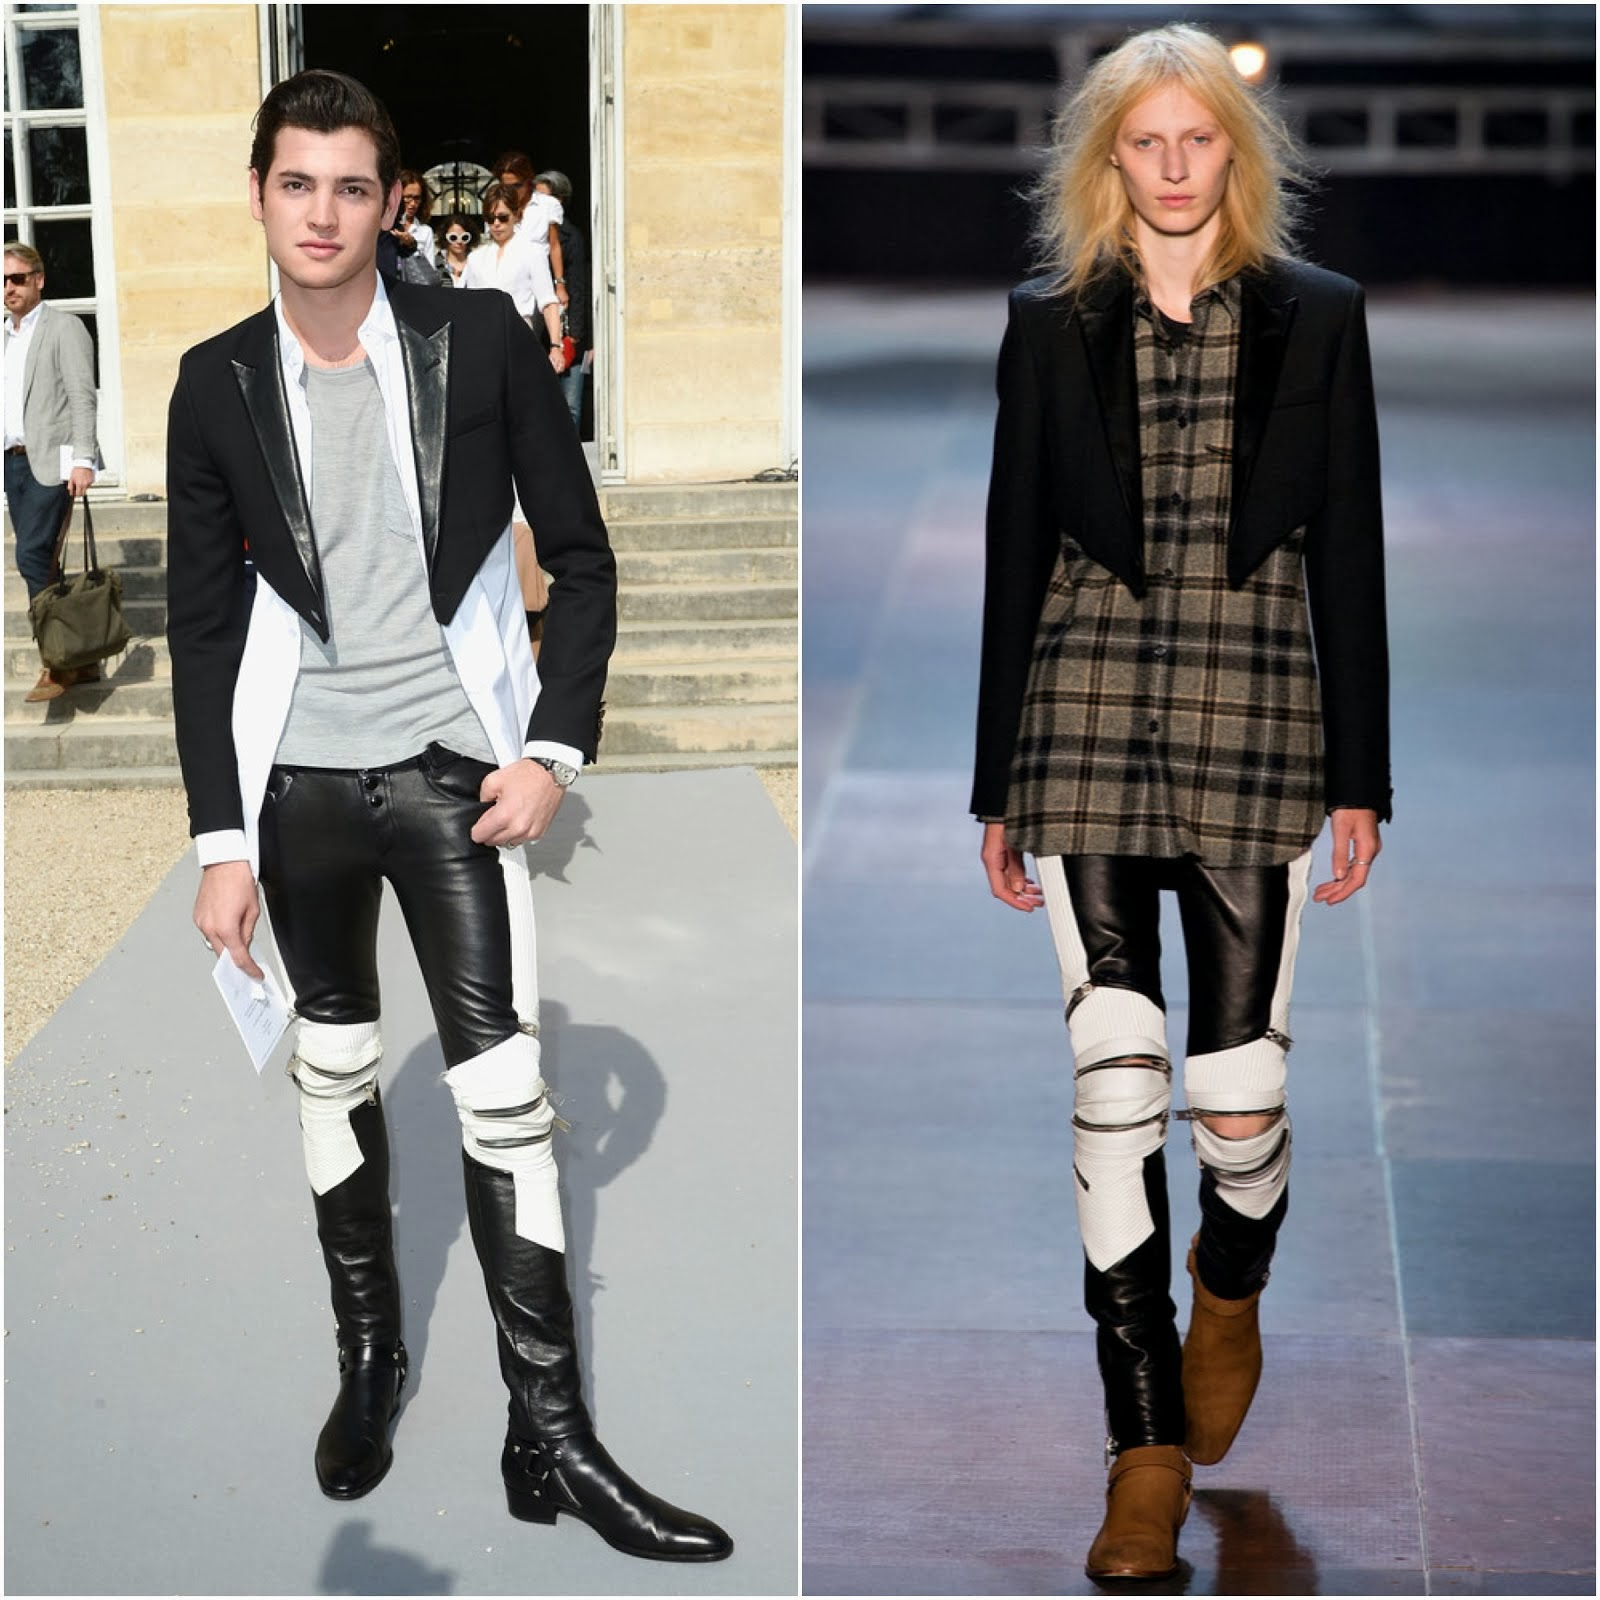 Peter Brant Jr in Saint Laurent - Christian Dior Spring Summer 2014 / 00O00 Menswear Blog oooooh 000000h London